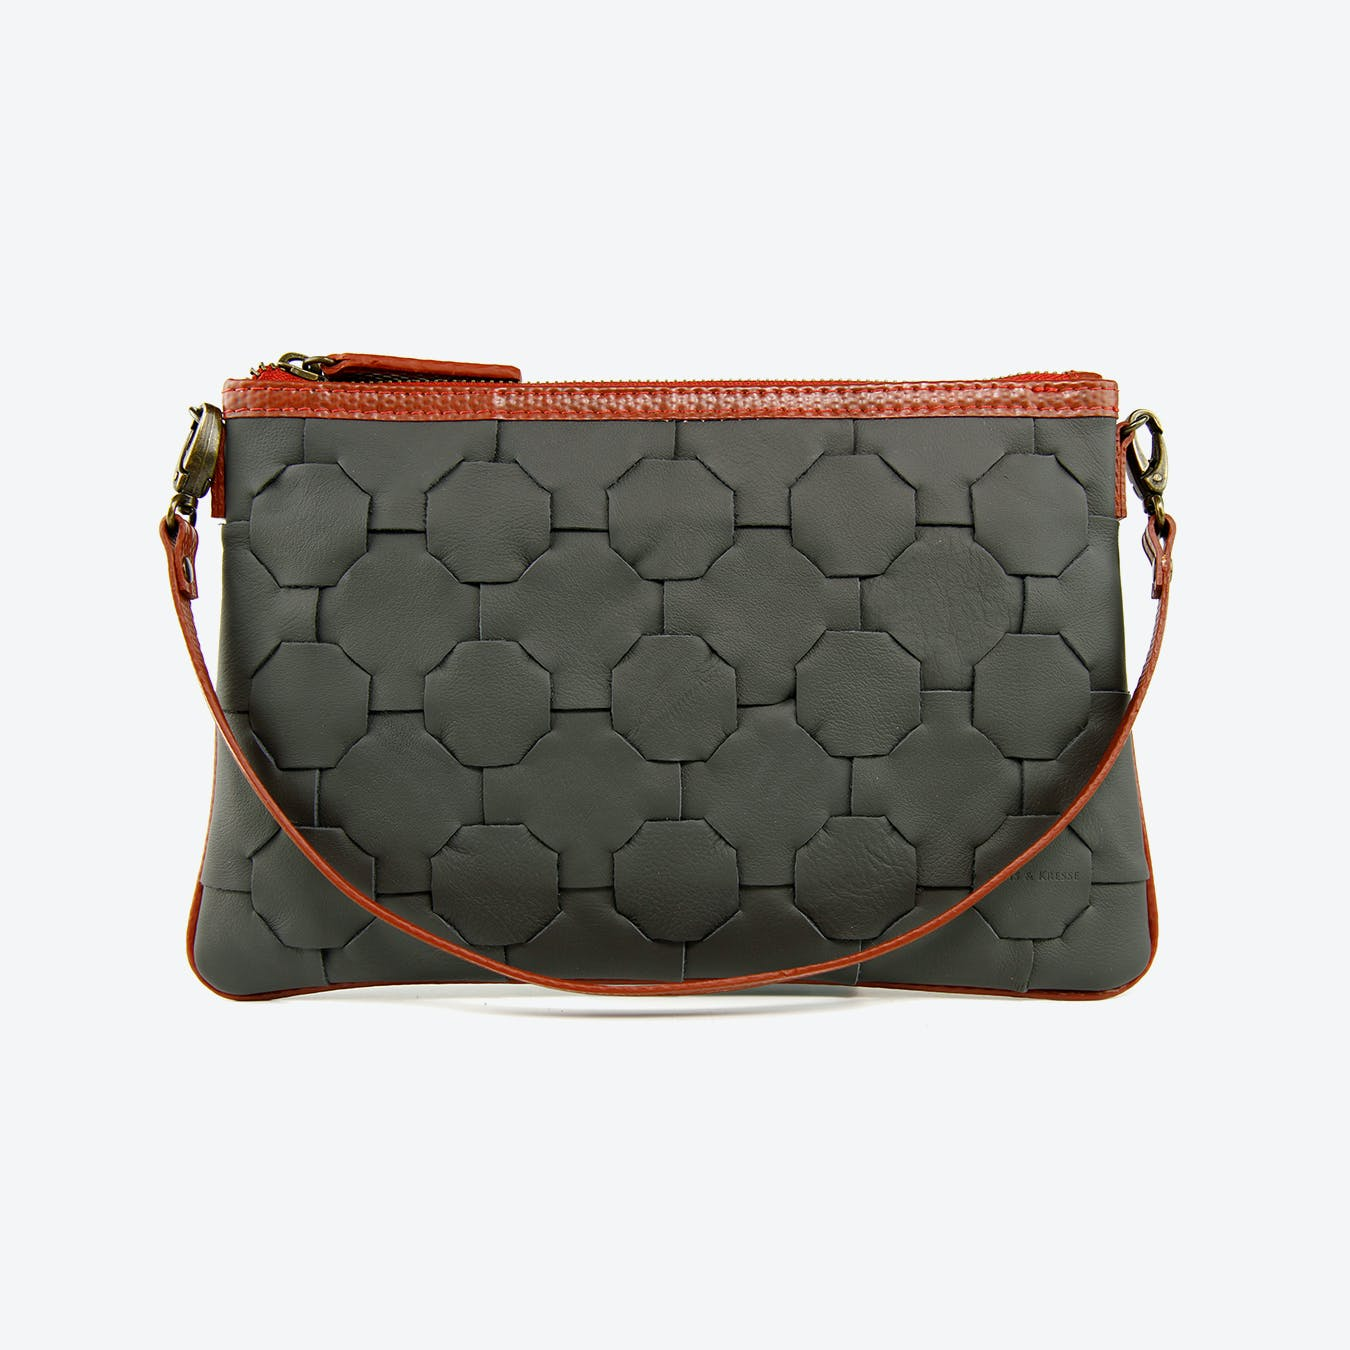 Fire & Hide Clutch Bag in Black Burberry Leather